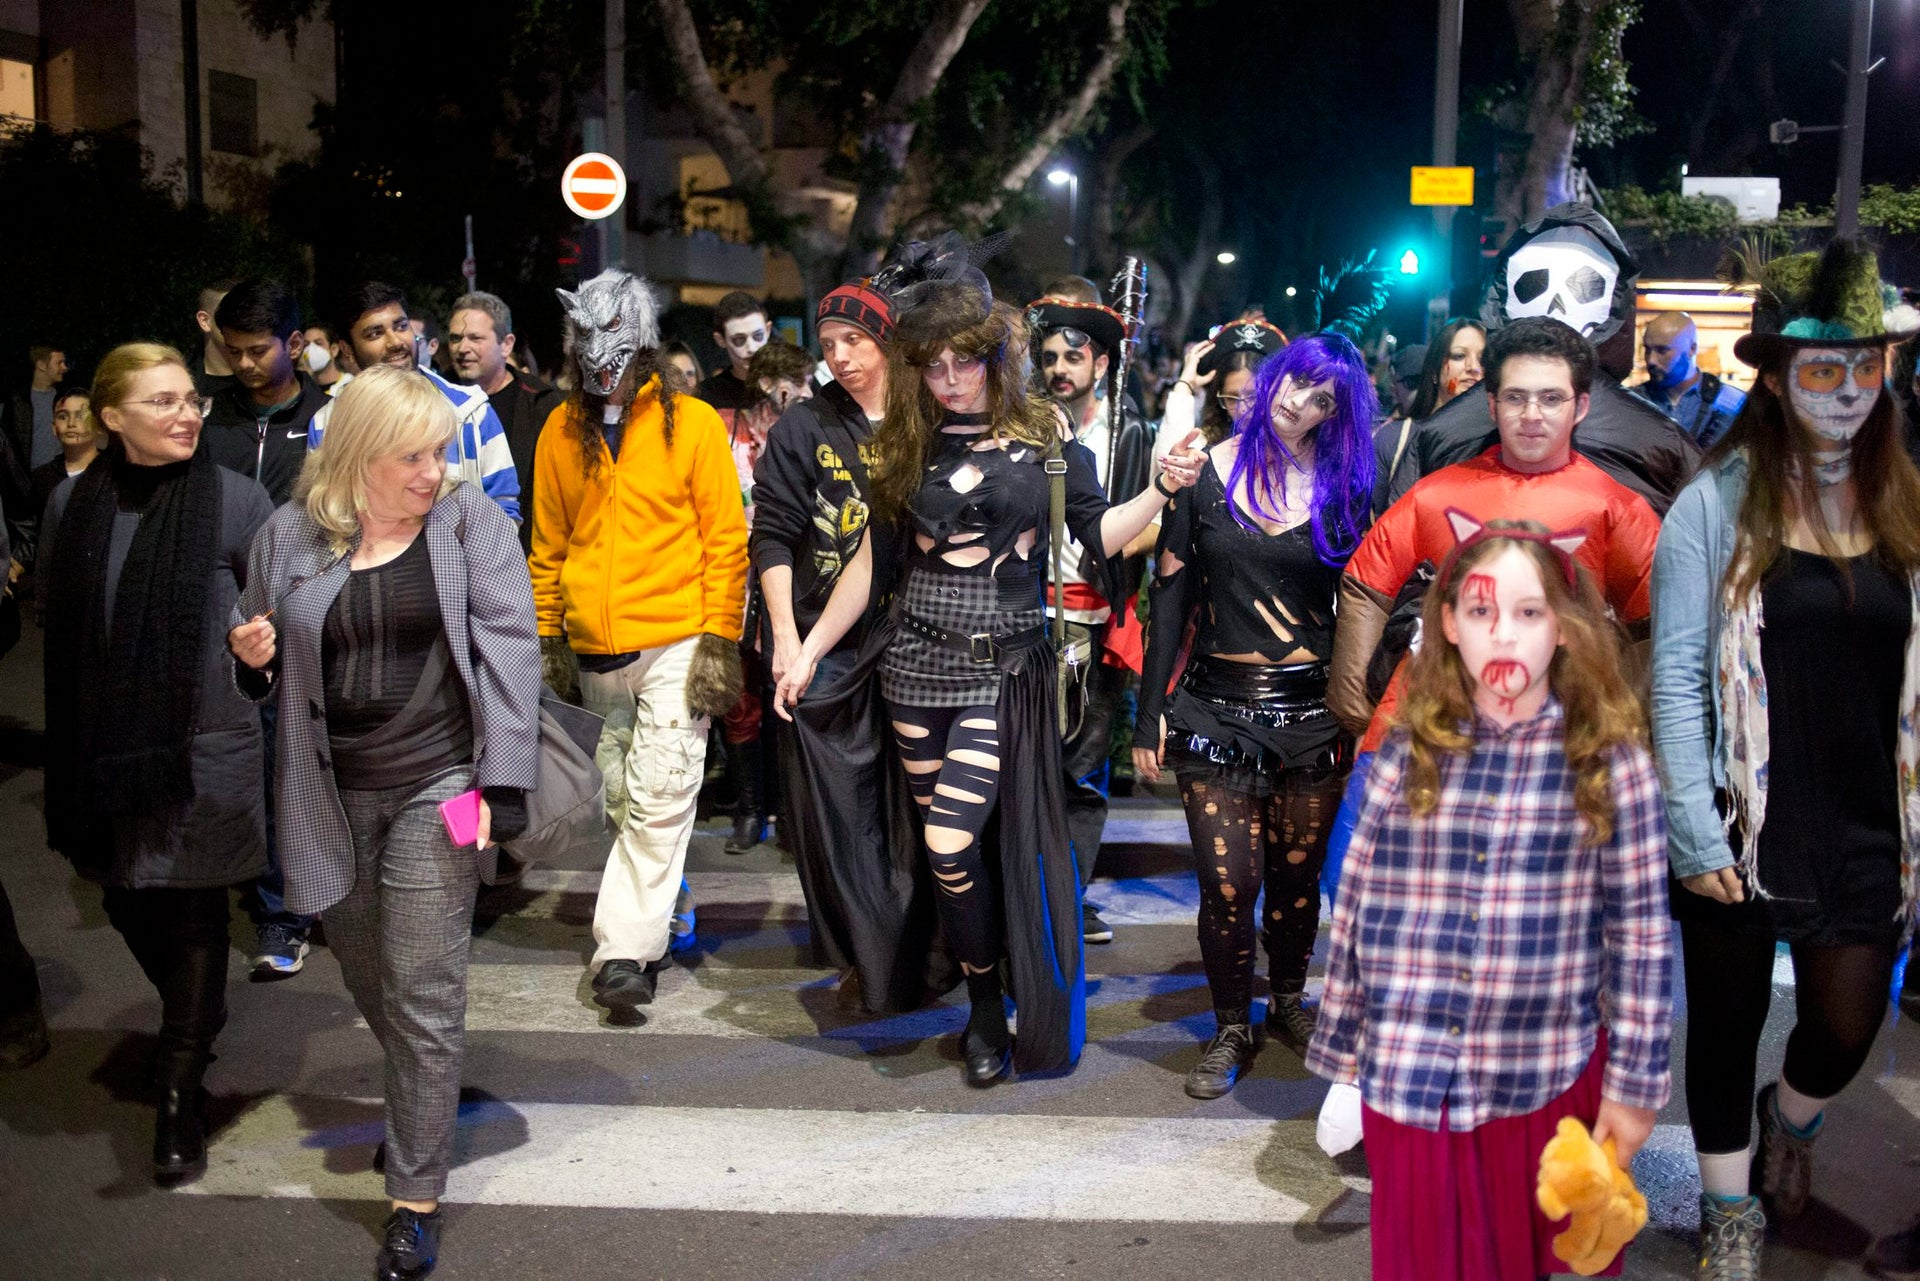 People wear zombie make-up and outfits in the Zombie Walk during the Purim festival in Tel Aviv, Israel, Saturday, March 3, 2018.